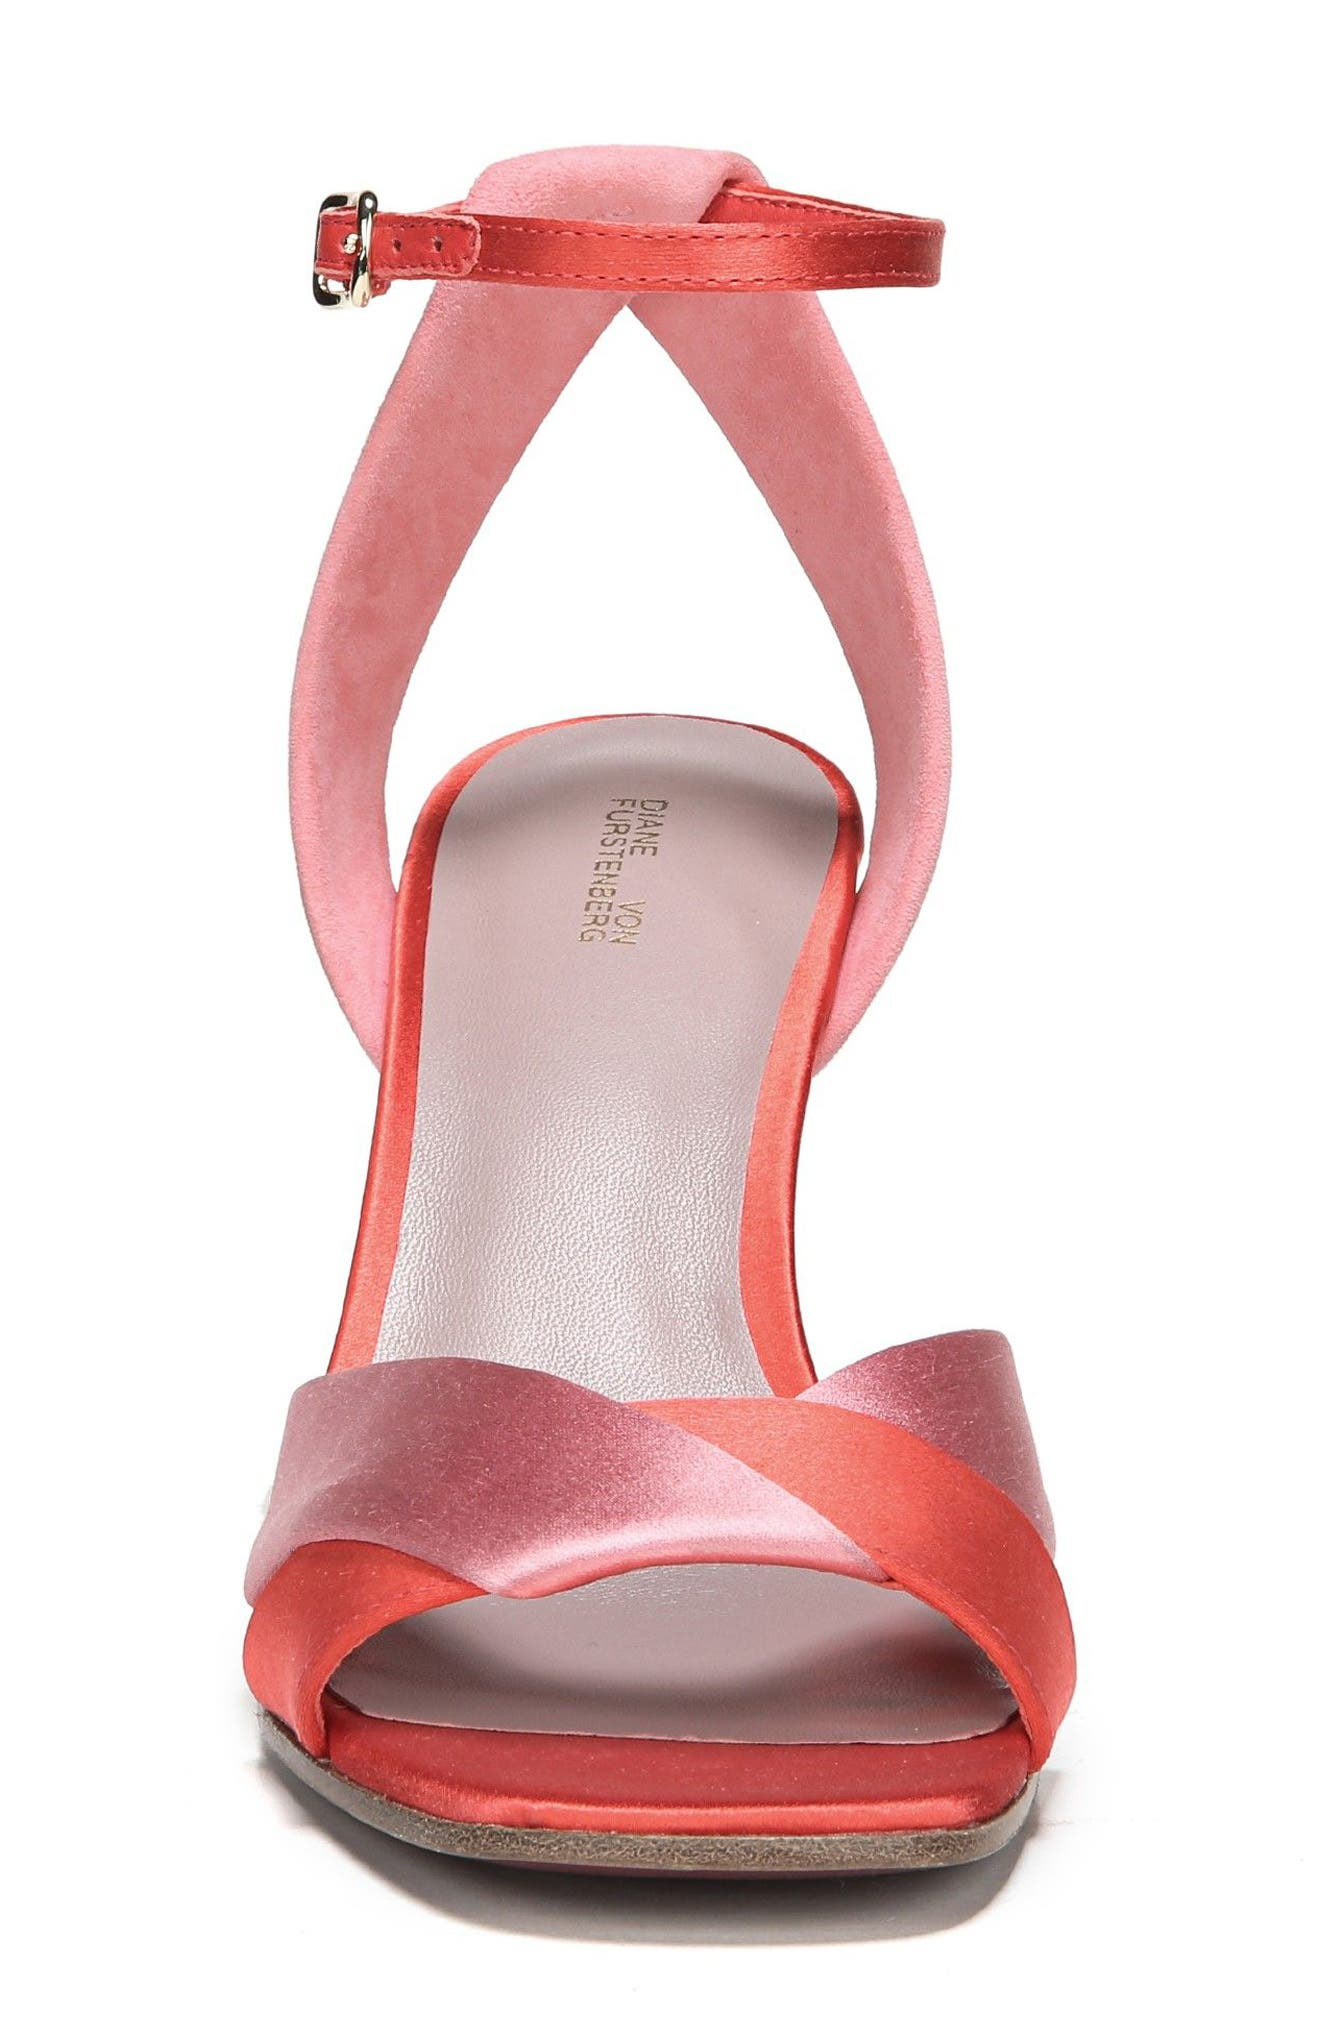 Fiona Strappy Sandal,                             Alternate thumbnail 4, color,                             650